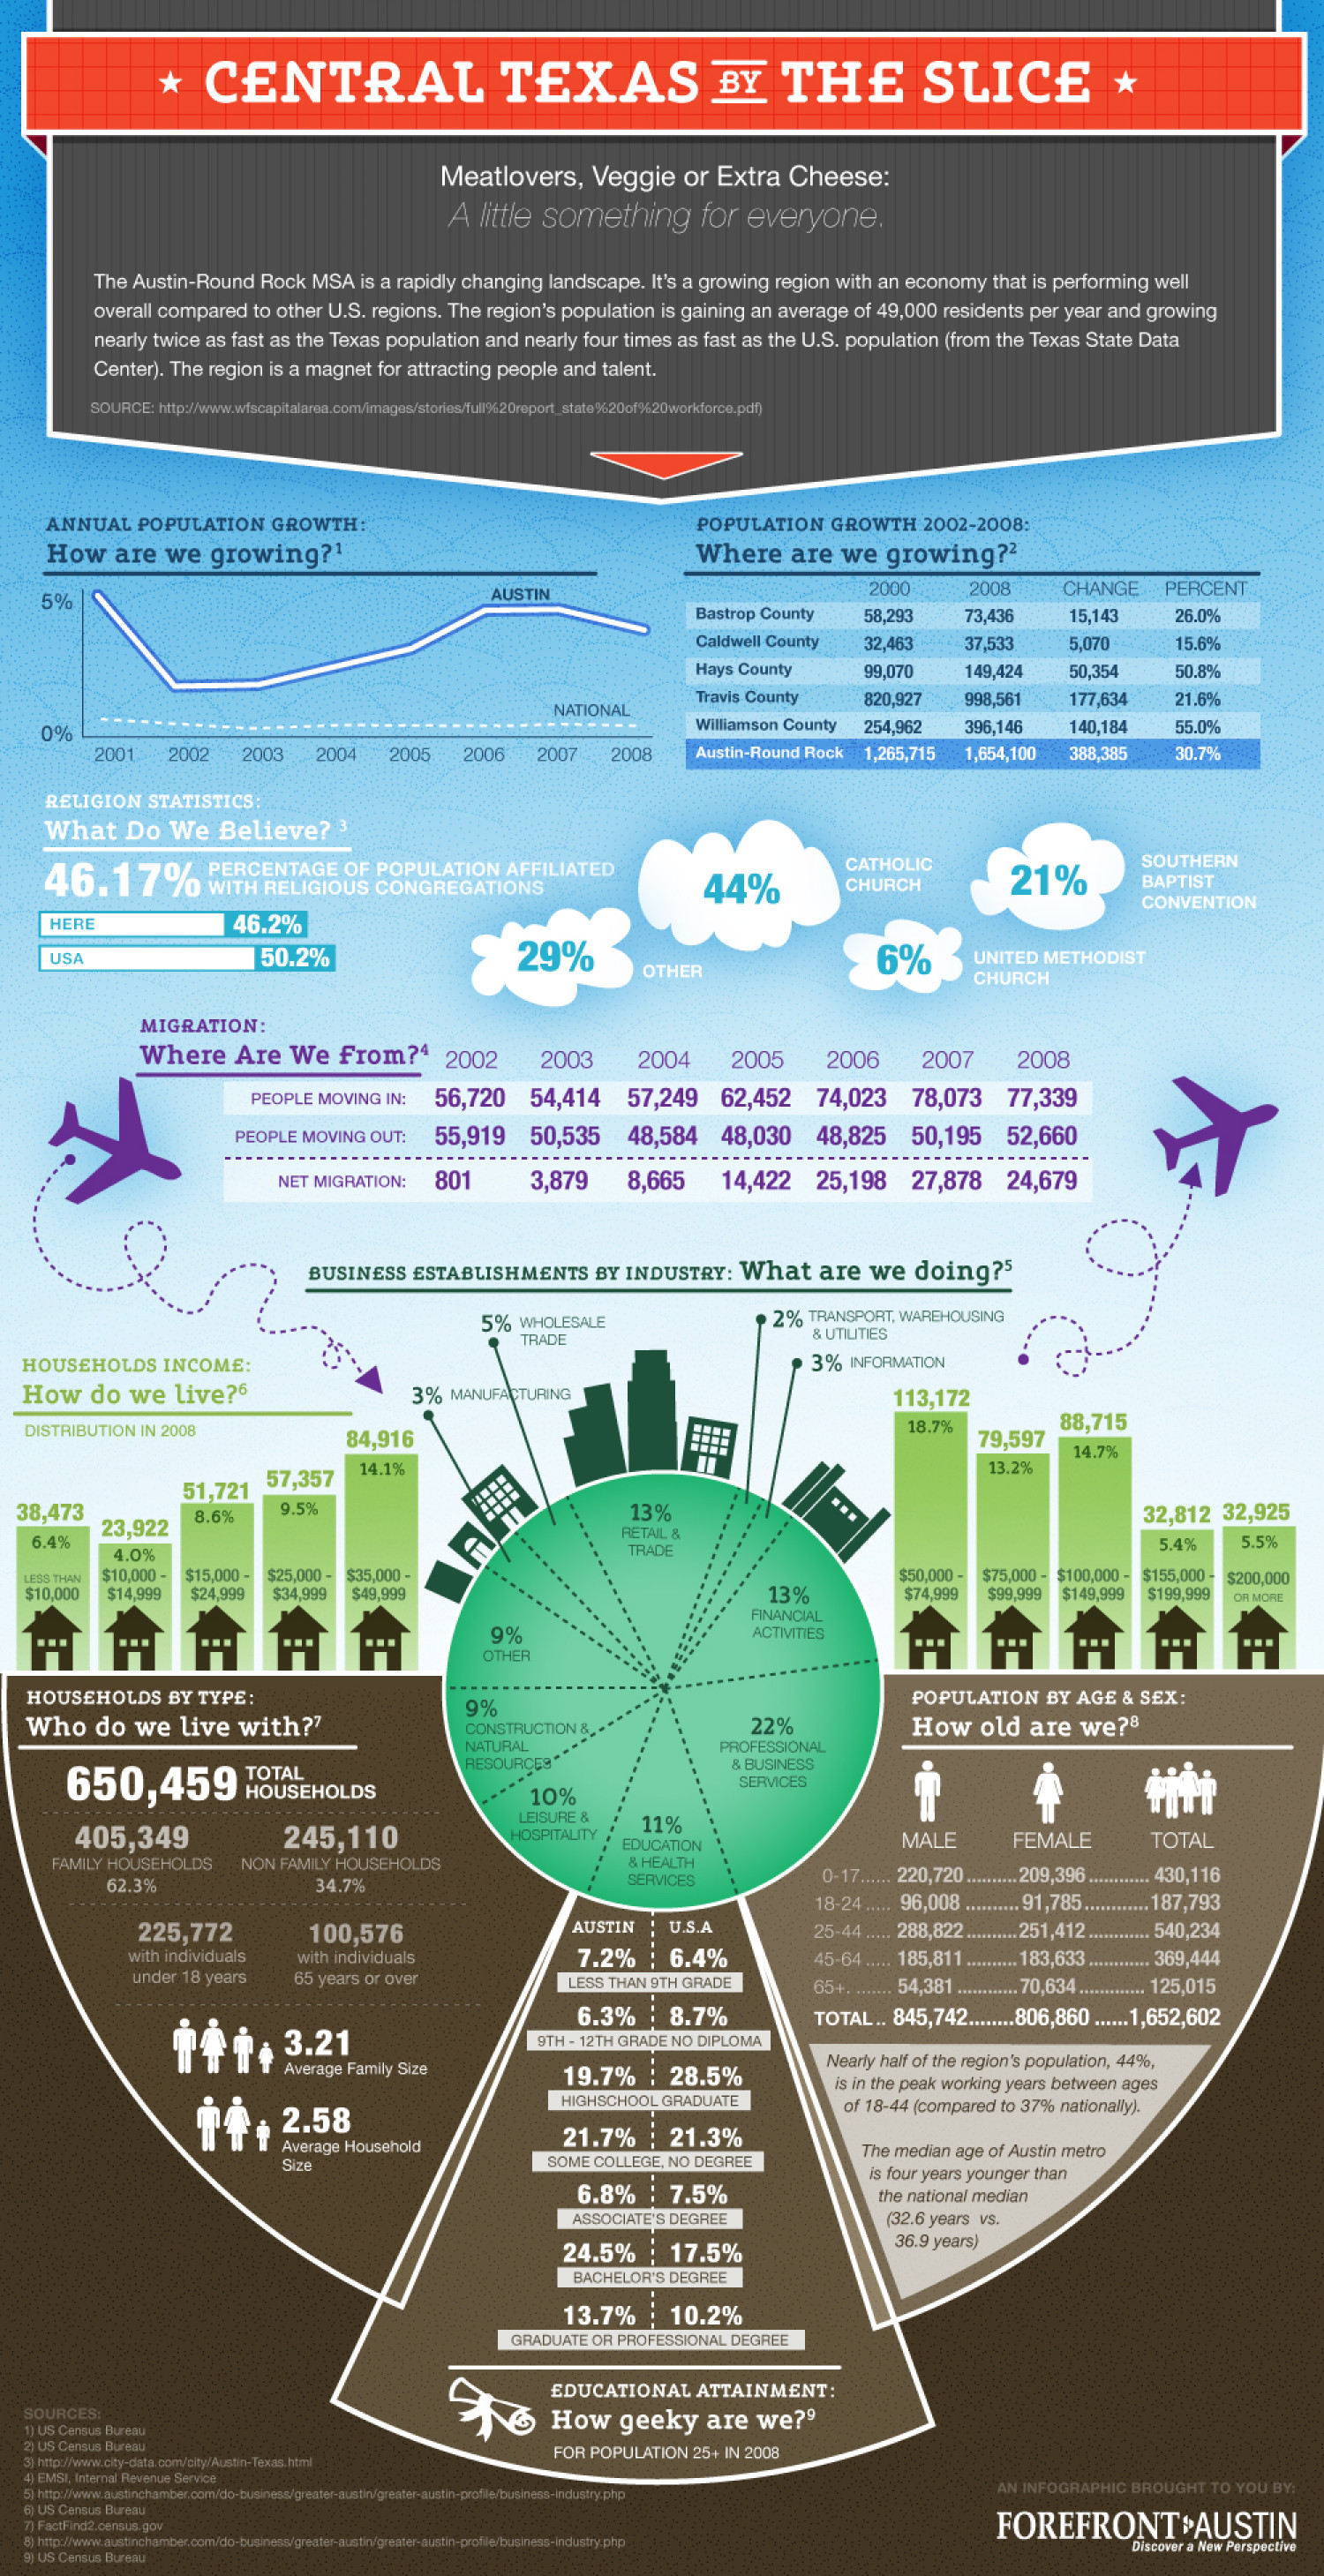 Central Texas by the Slice Infographic